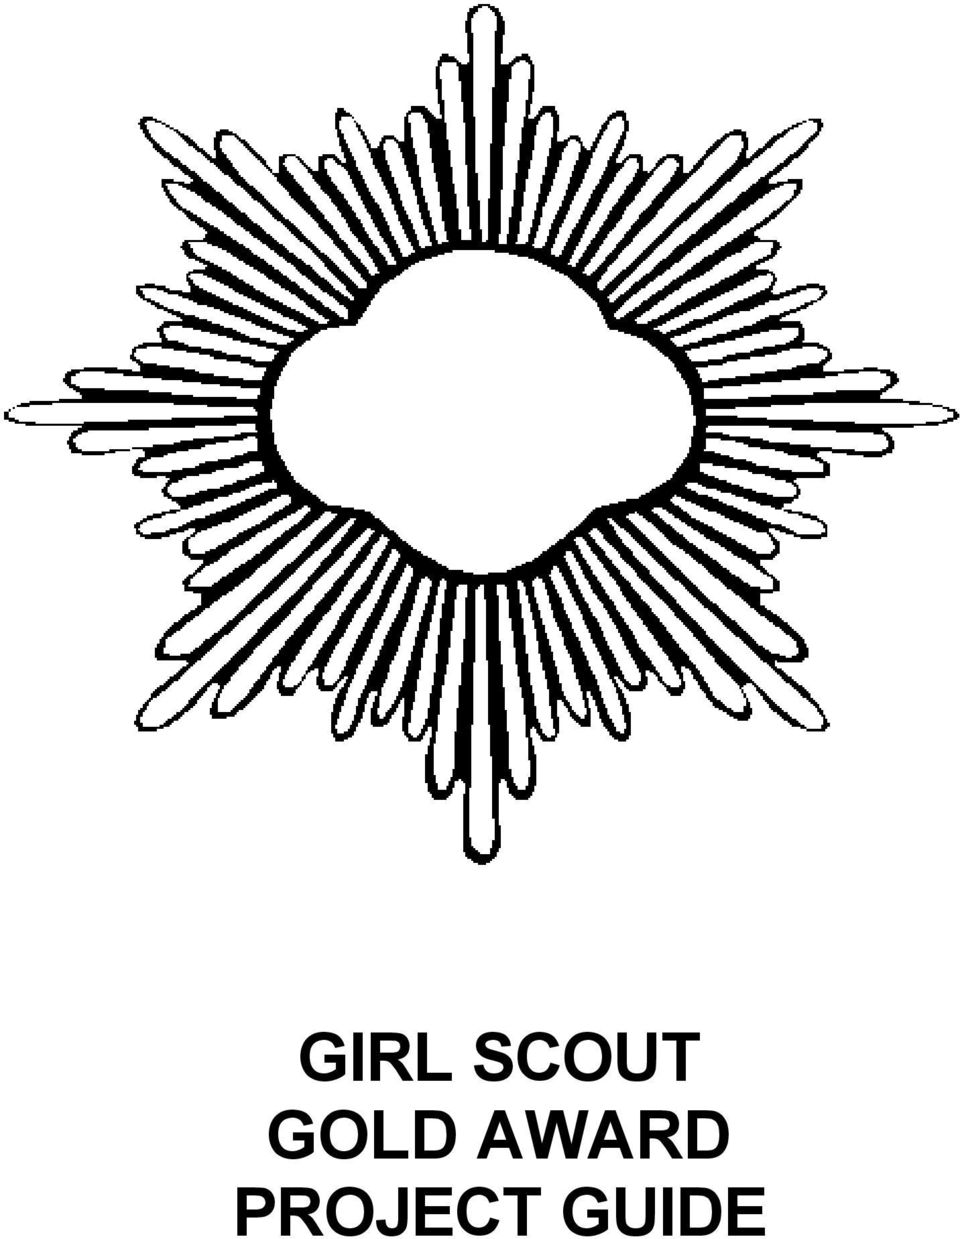 girl scout gold award project guide pdf Resume Skills Examples 2 girl scout promise on my honor i will try to serve god and my country to help people at all times and to live by the girl scout law